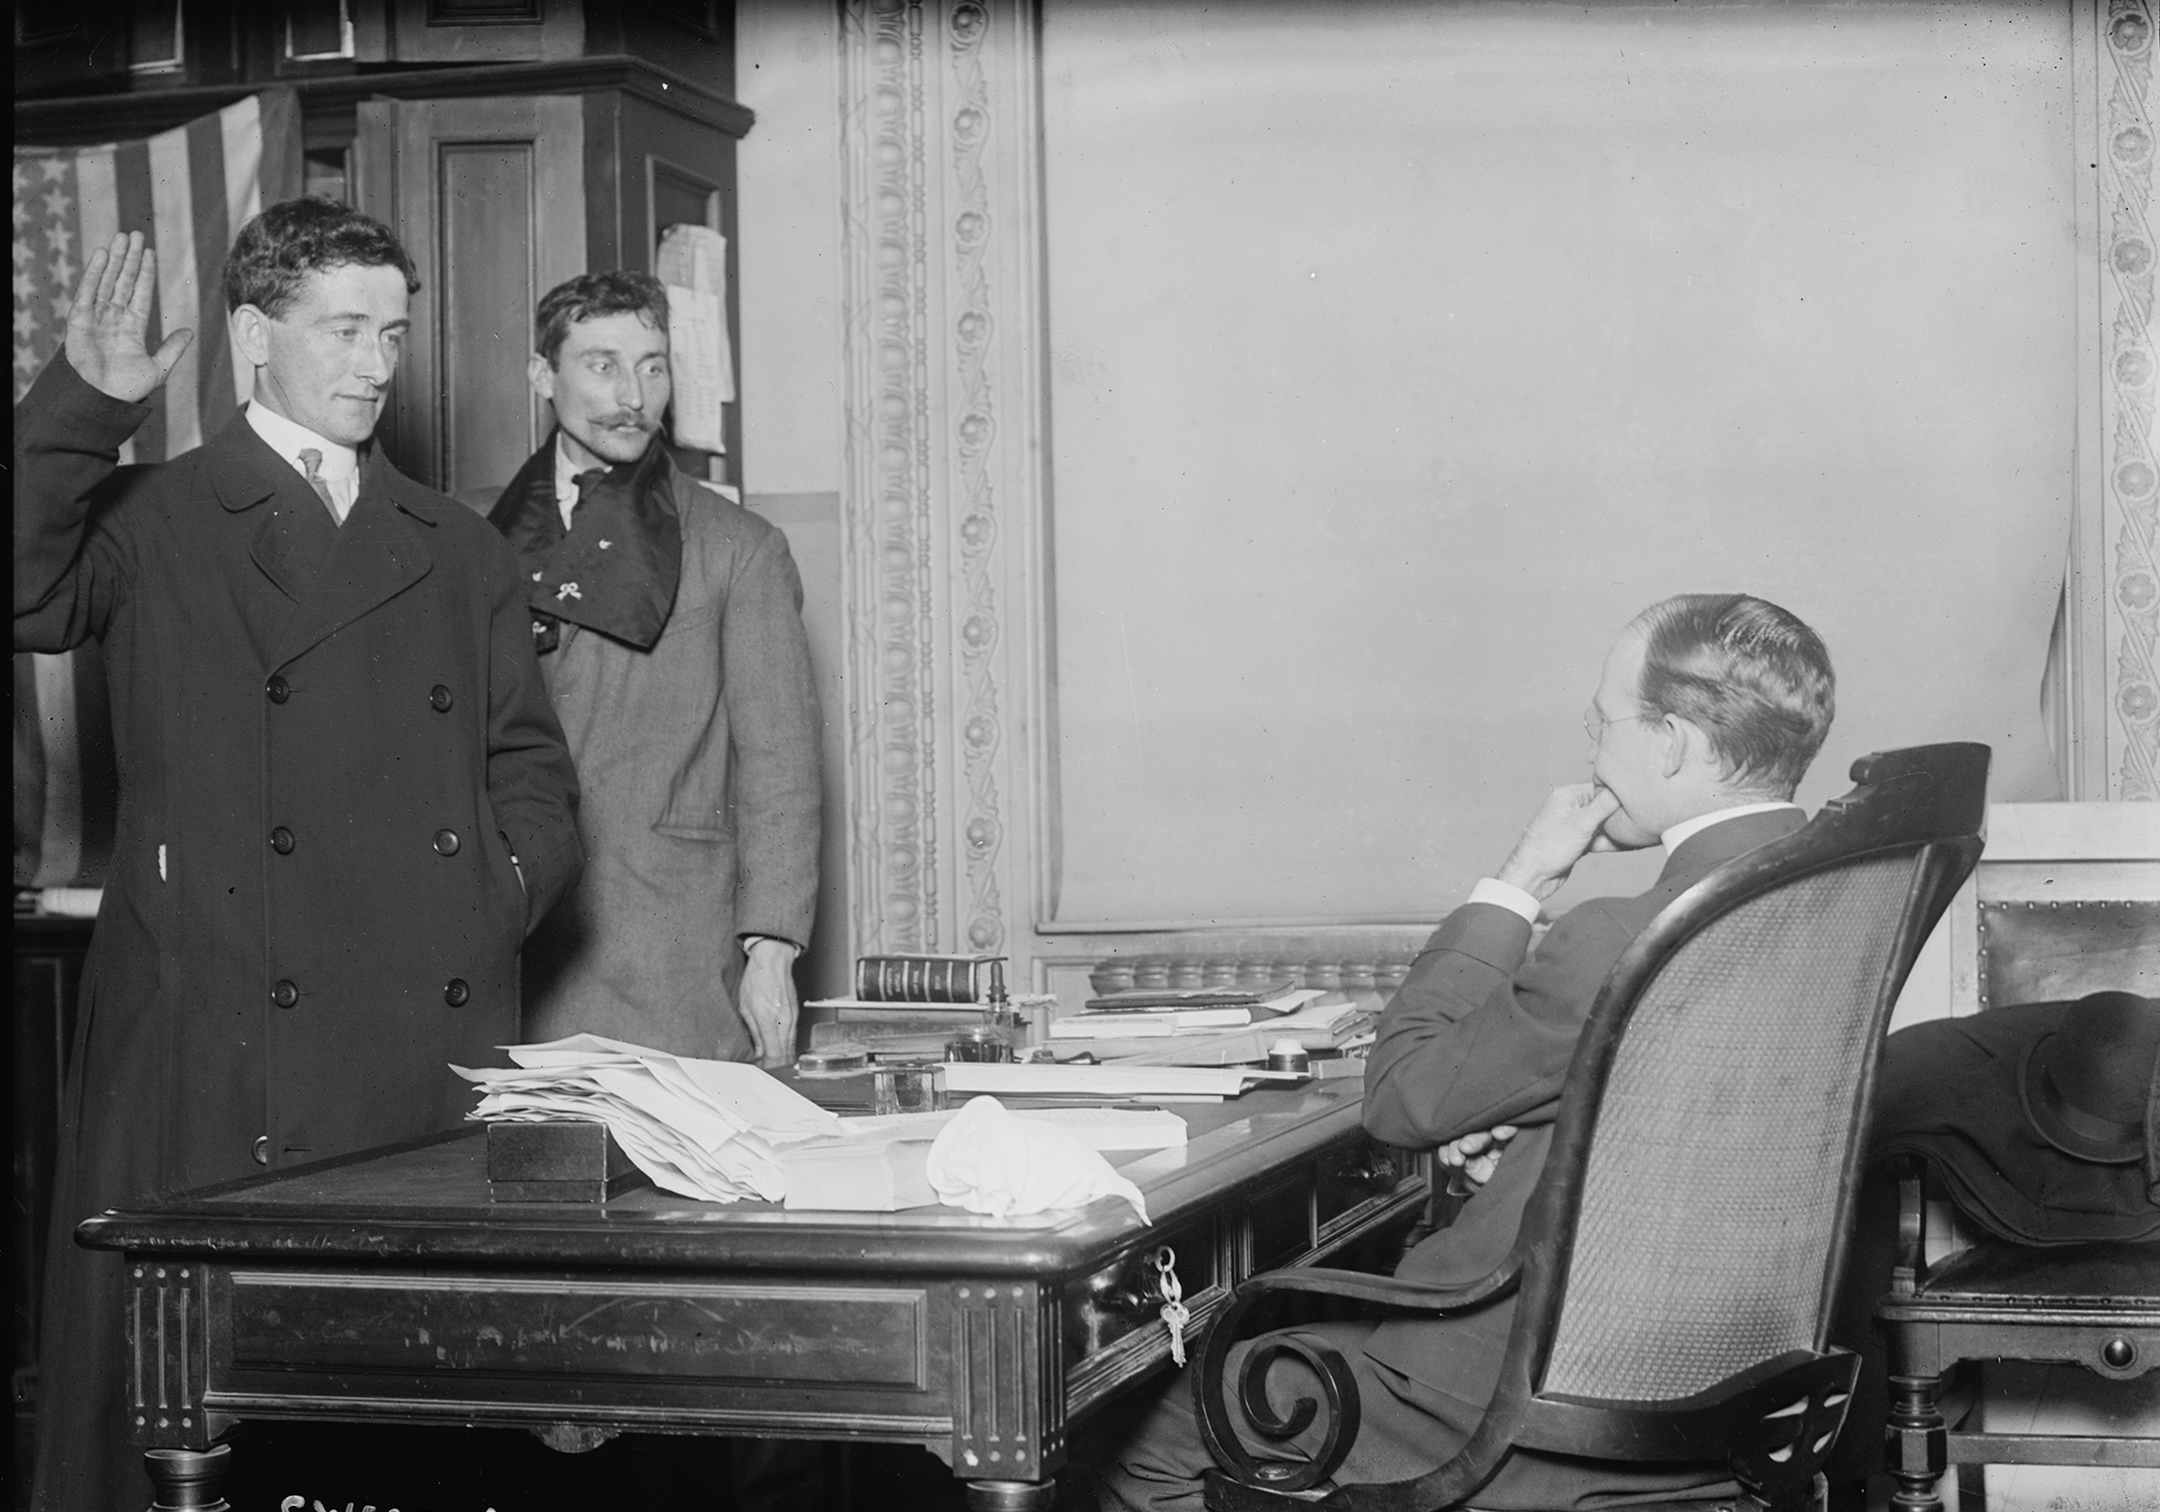 a black and white photo showing a judge in chambers swearing in a new citizen